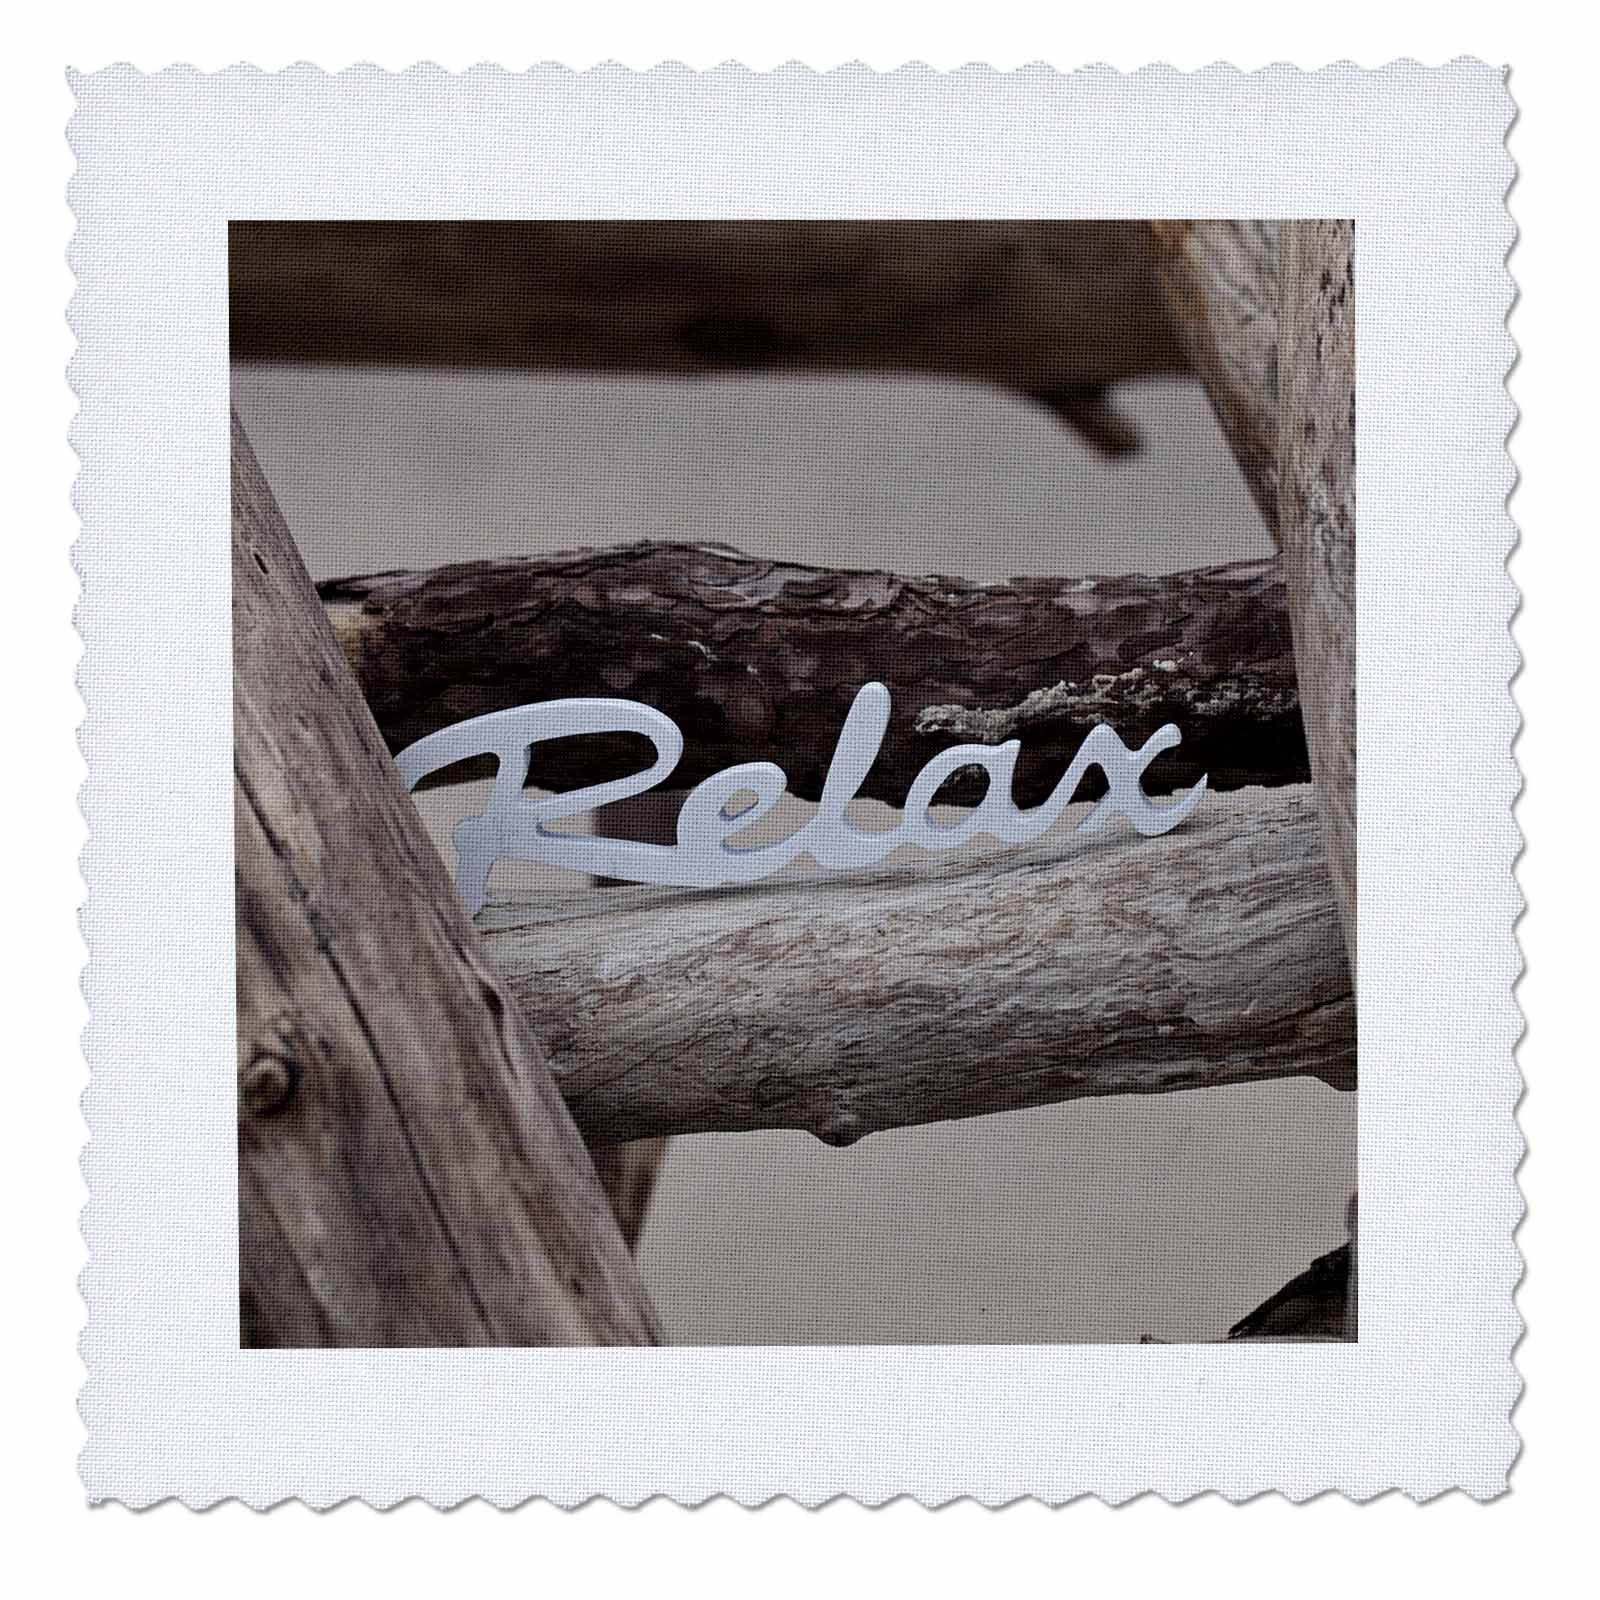 3dRose Andrea Haase Still Life Photography - Word Relax On Driftwood - 16x16 inch quilt square (qs_276260_6) by 3dRose (Image #1)